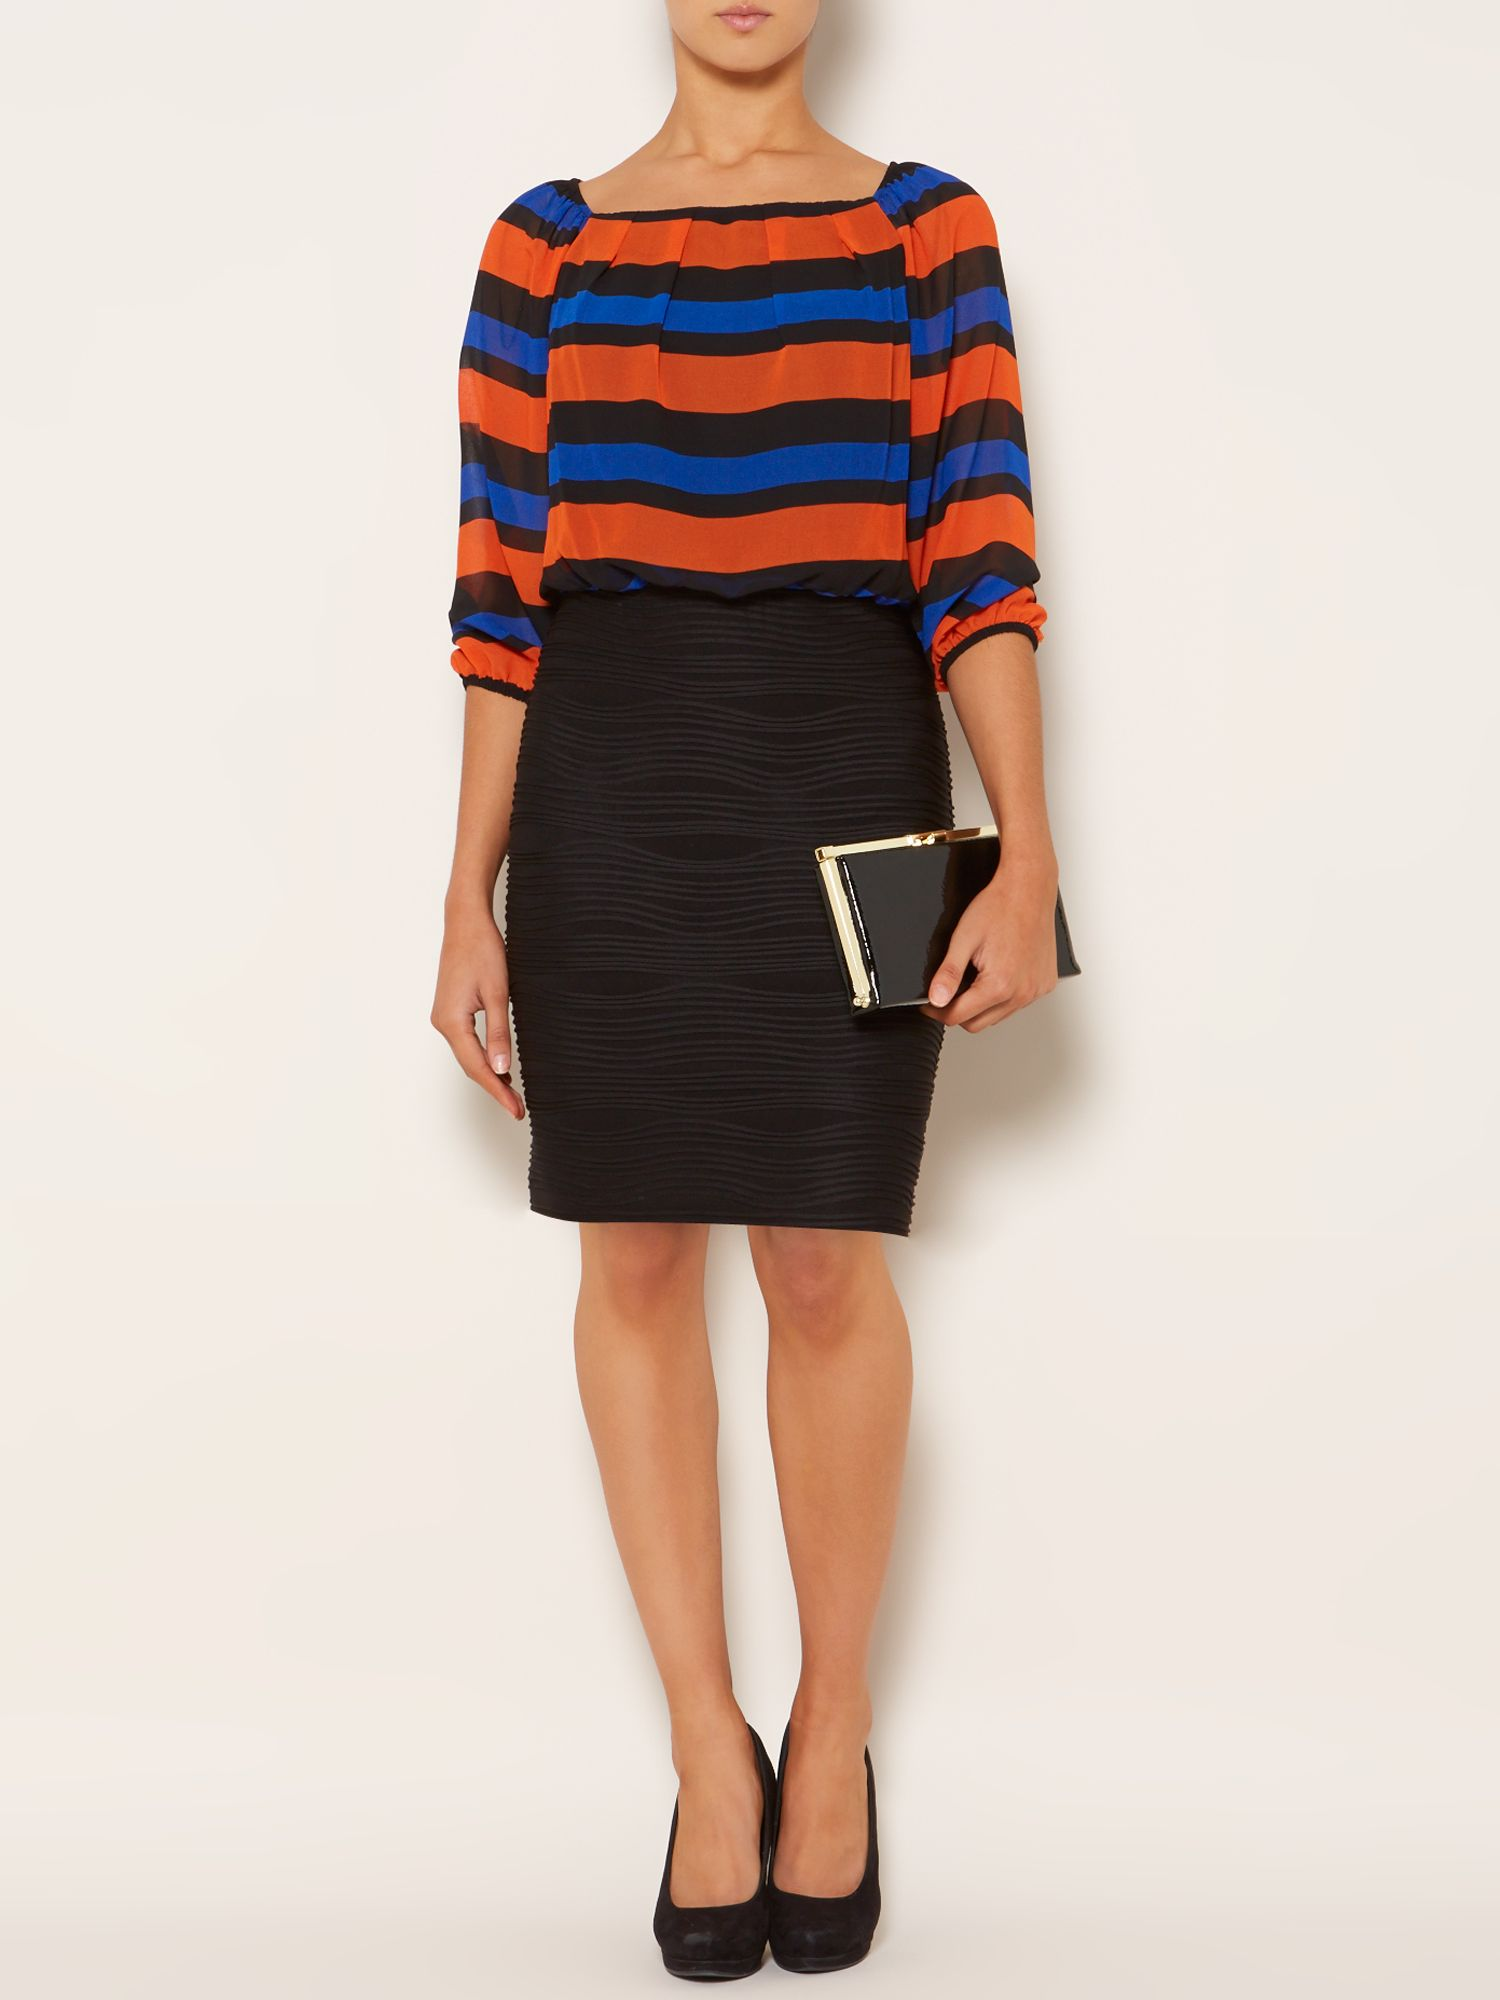 Woven top wave shutter skirt dress